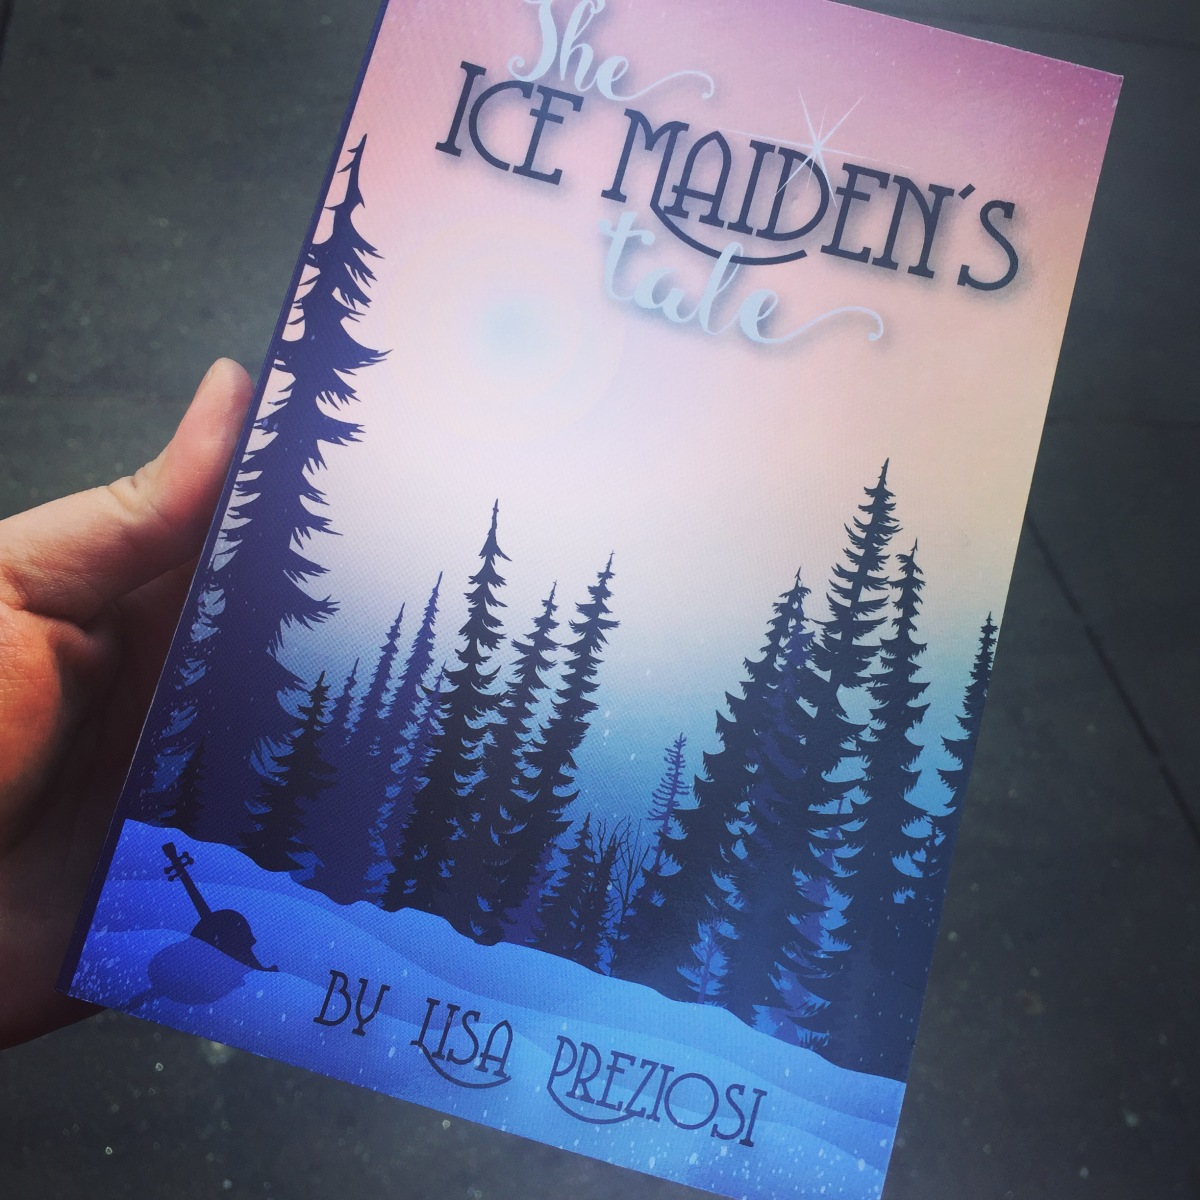 Writer's Shelf: The Ice Maiden's Tale – Kindle Presale!